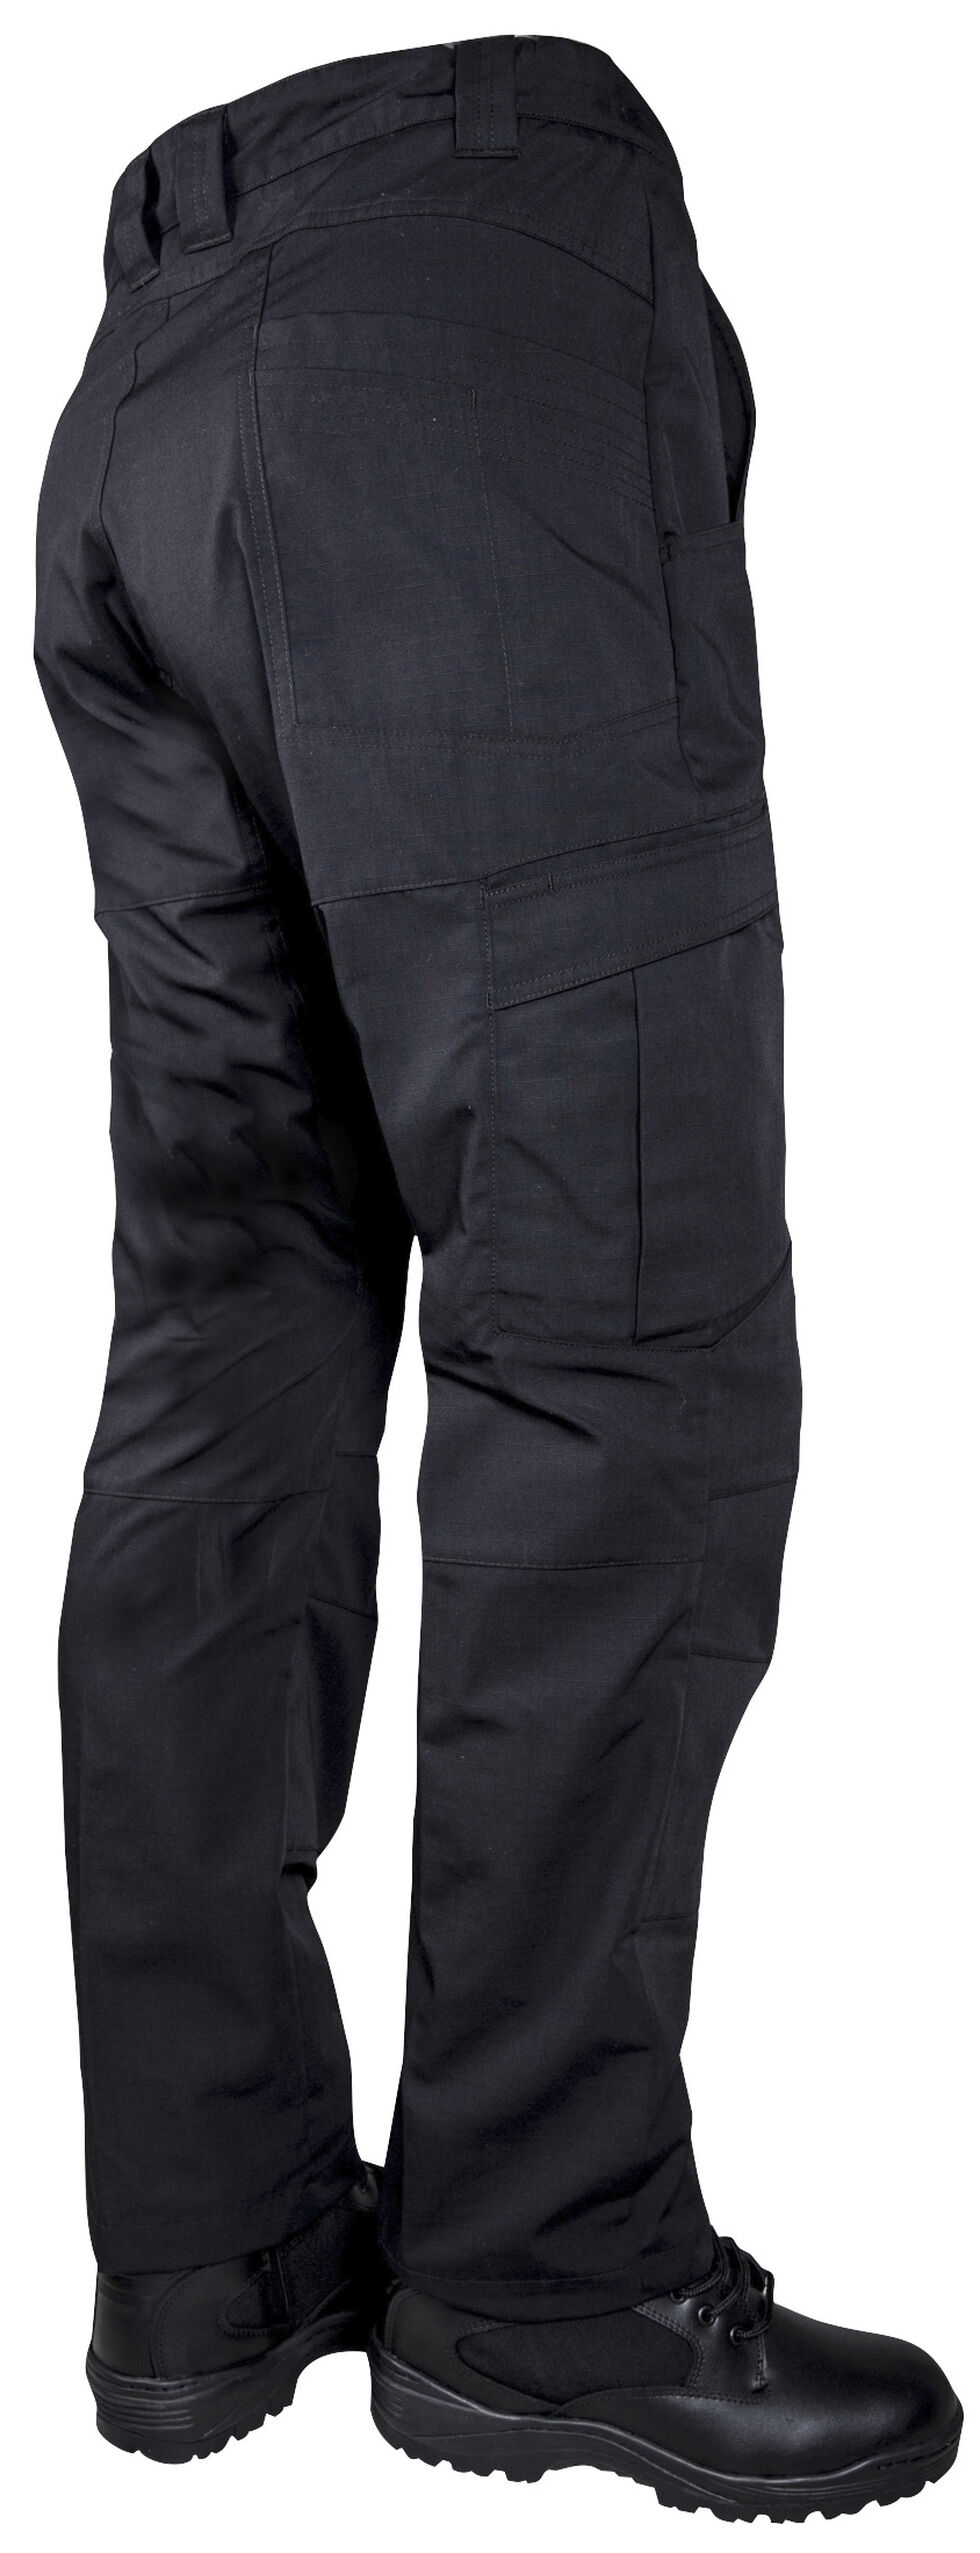 Tru-Spec Men's 24-7 Black Vector Pants , Black, hi-res